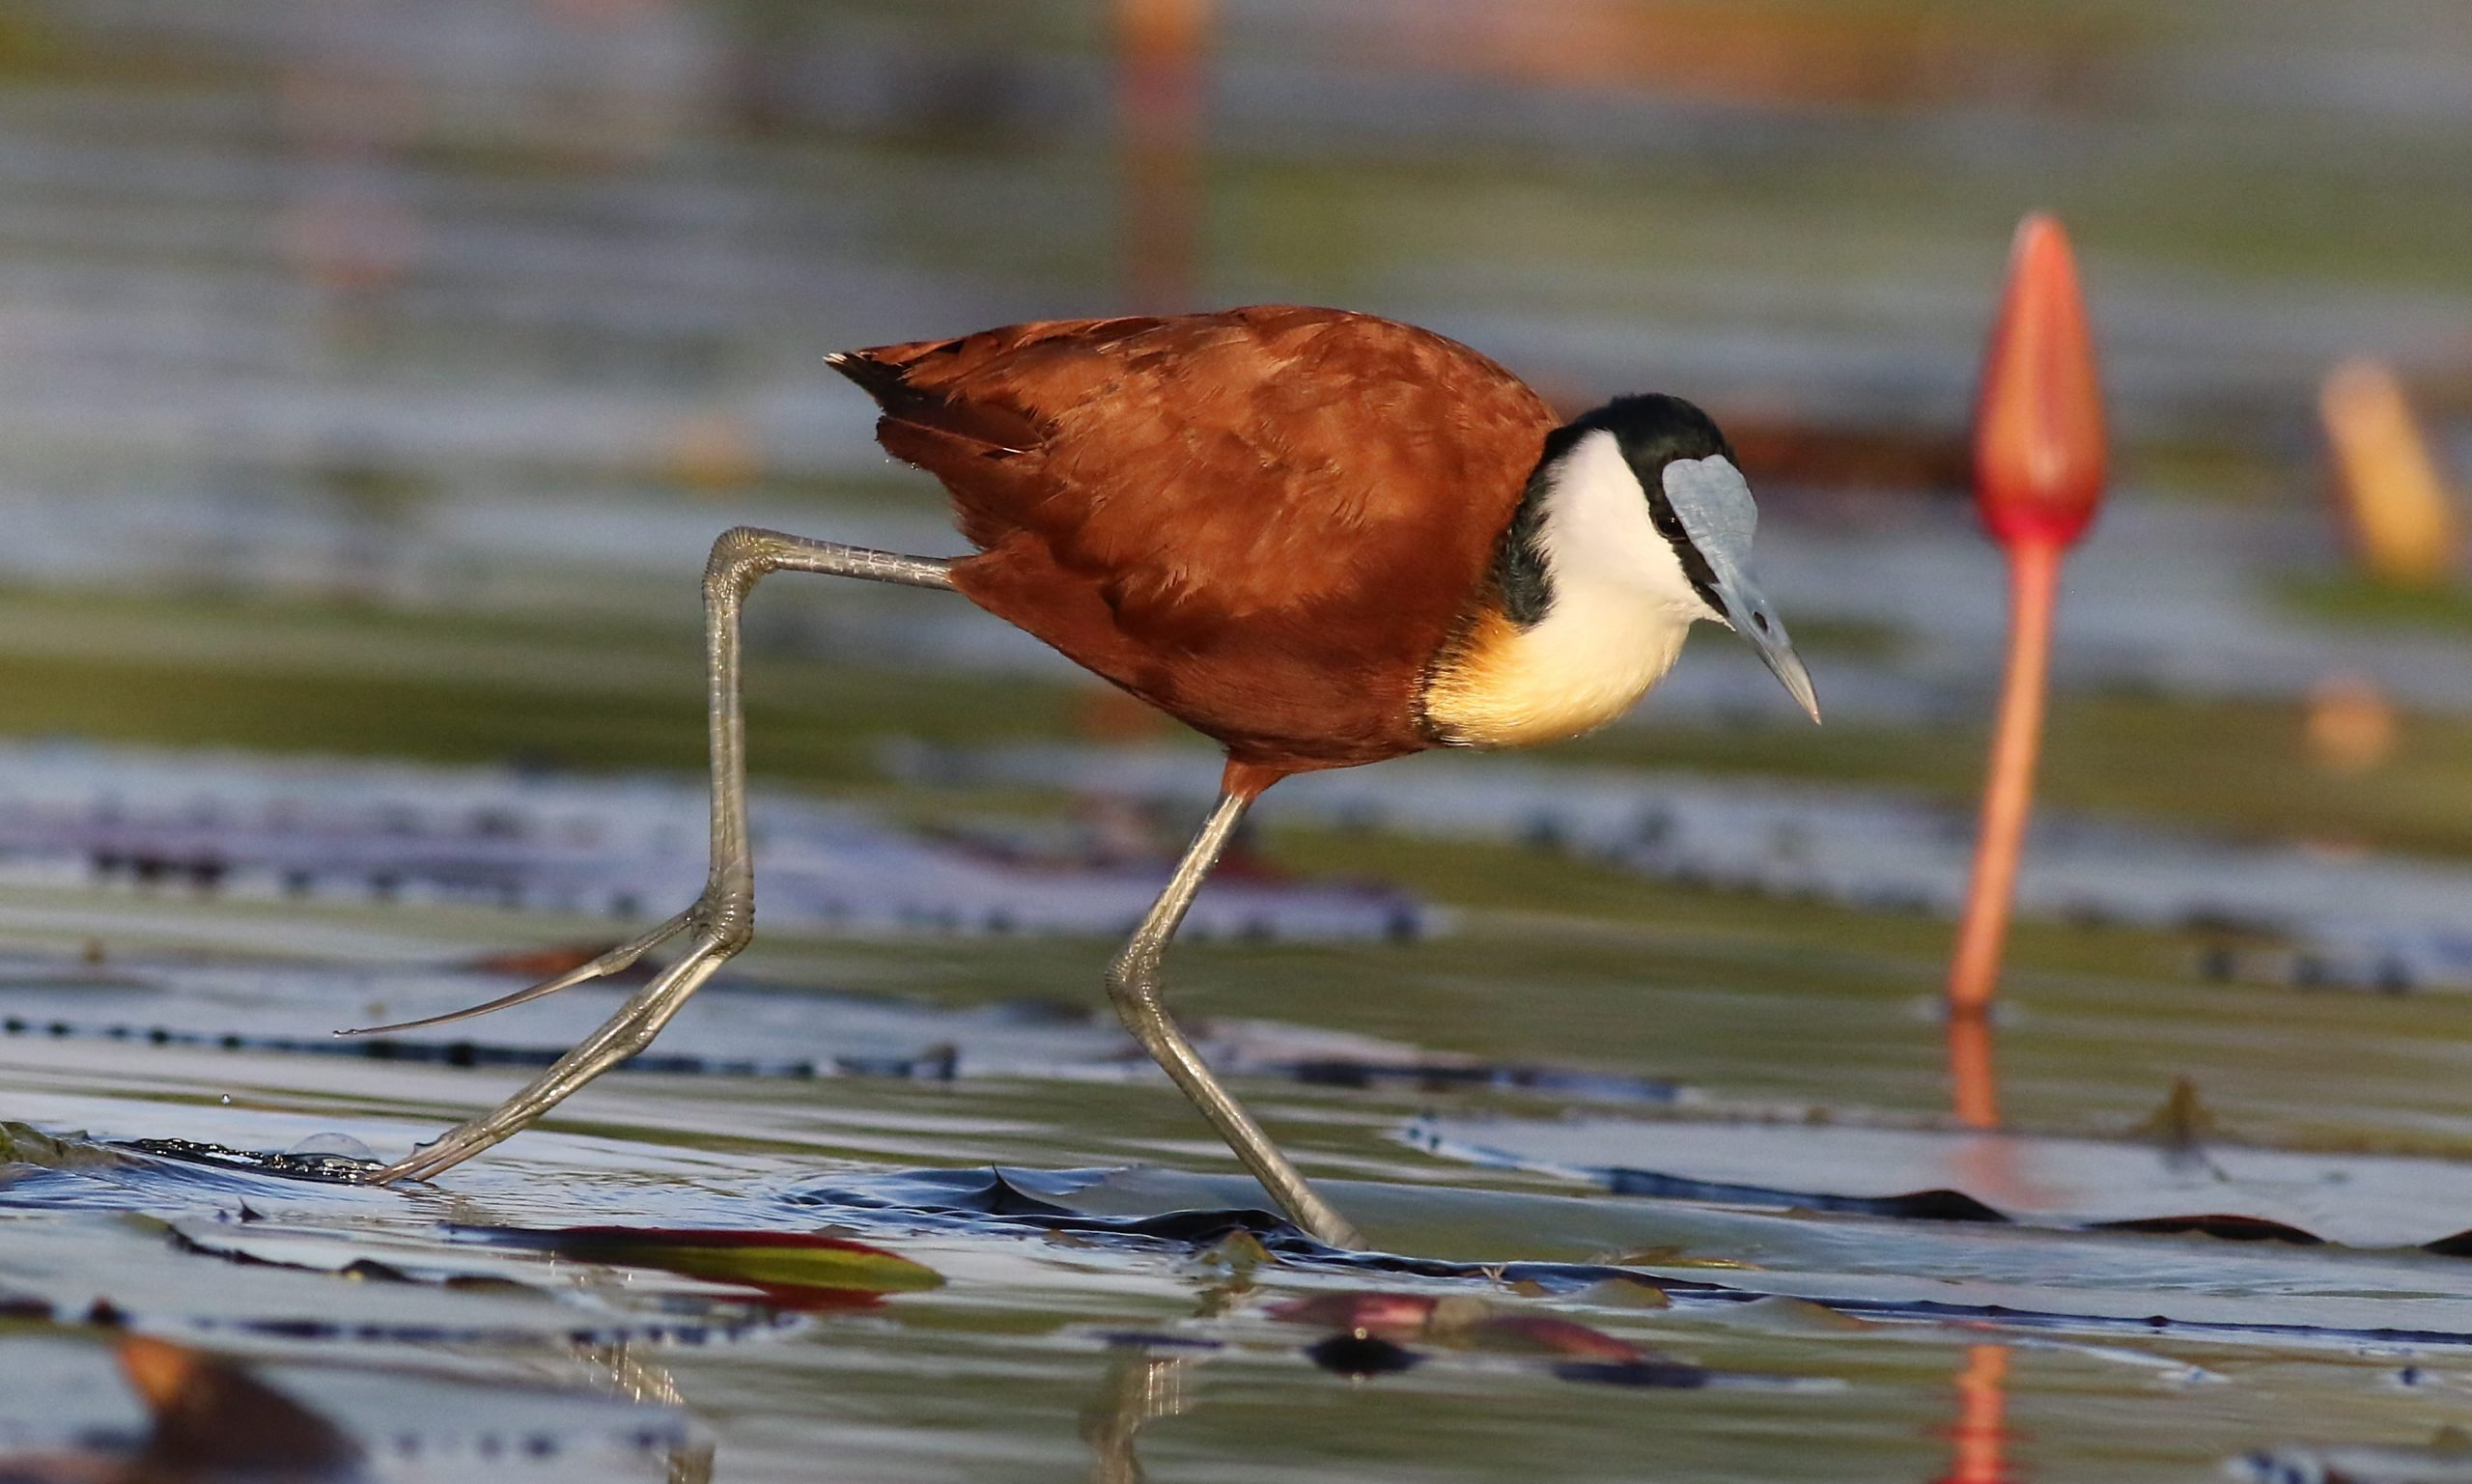 The lesser jacana is a sight to behold in the Okavango Delta